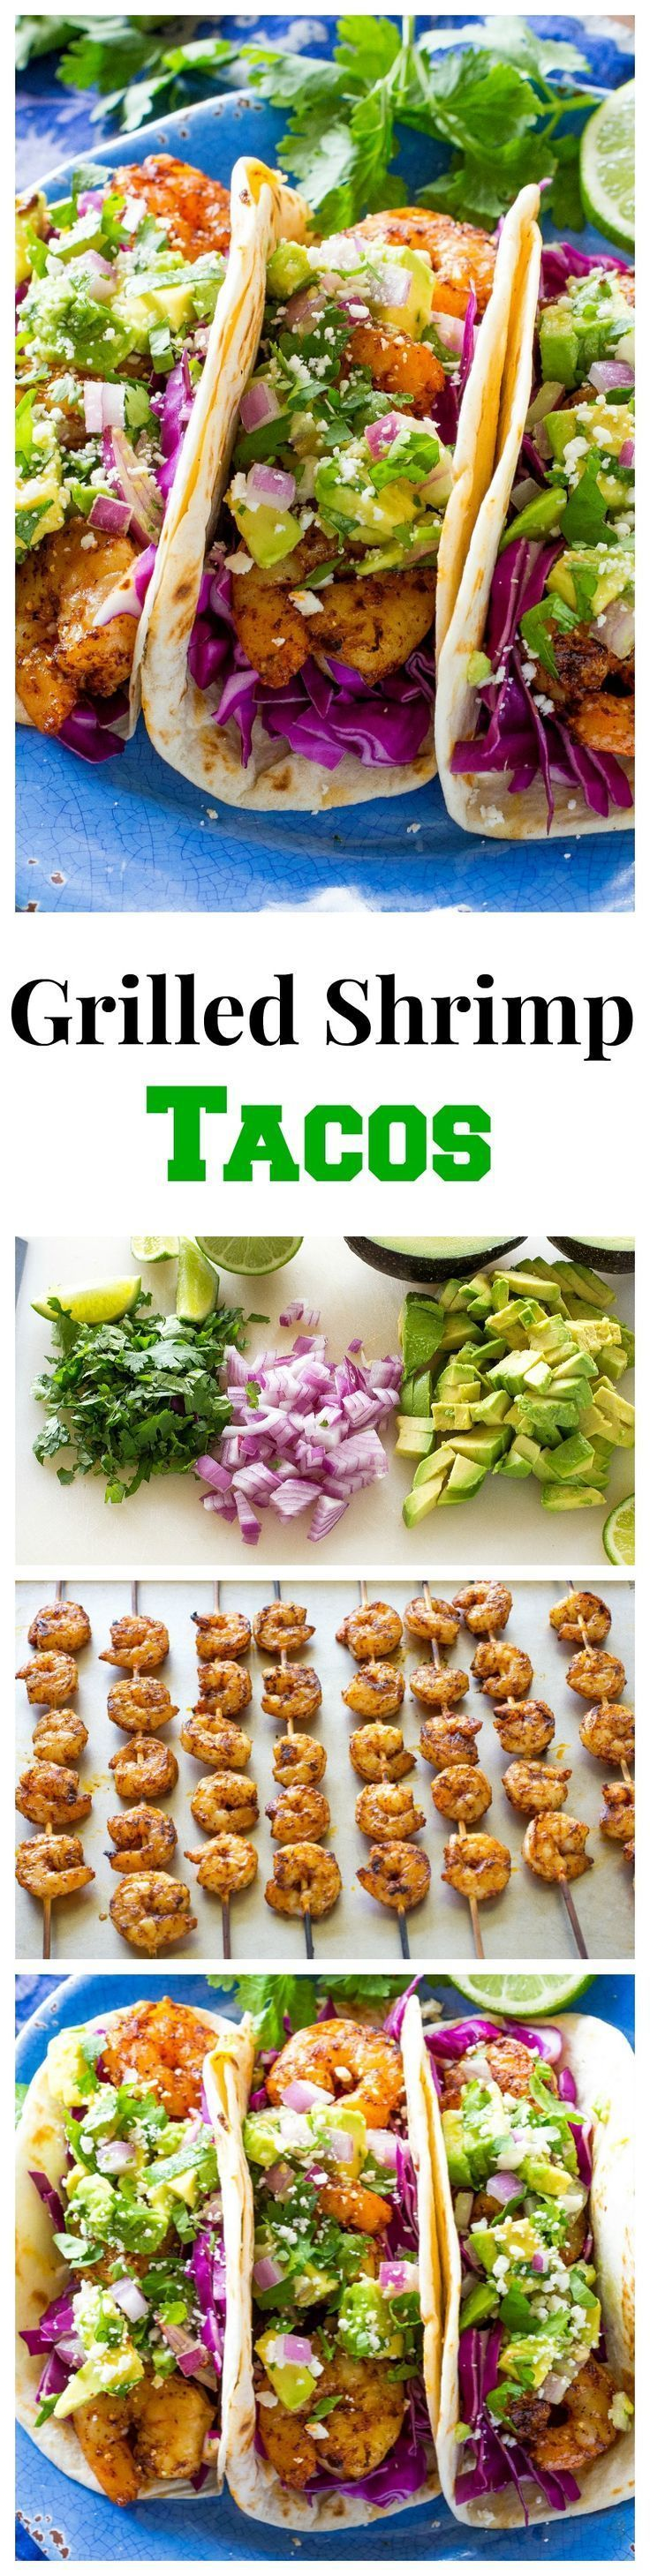 These Grilled Shrimp Tacos with Avocado Salsa are light and refreshing! http://the-girl-who-ate-everything.com